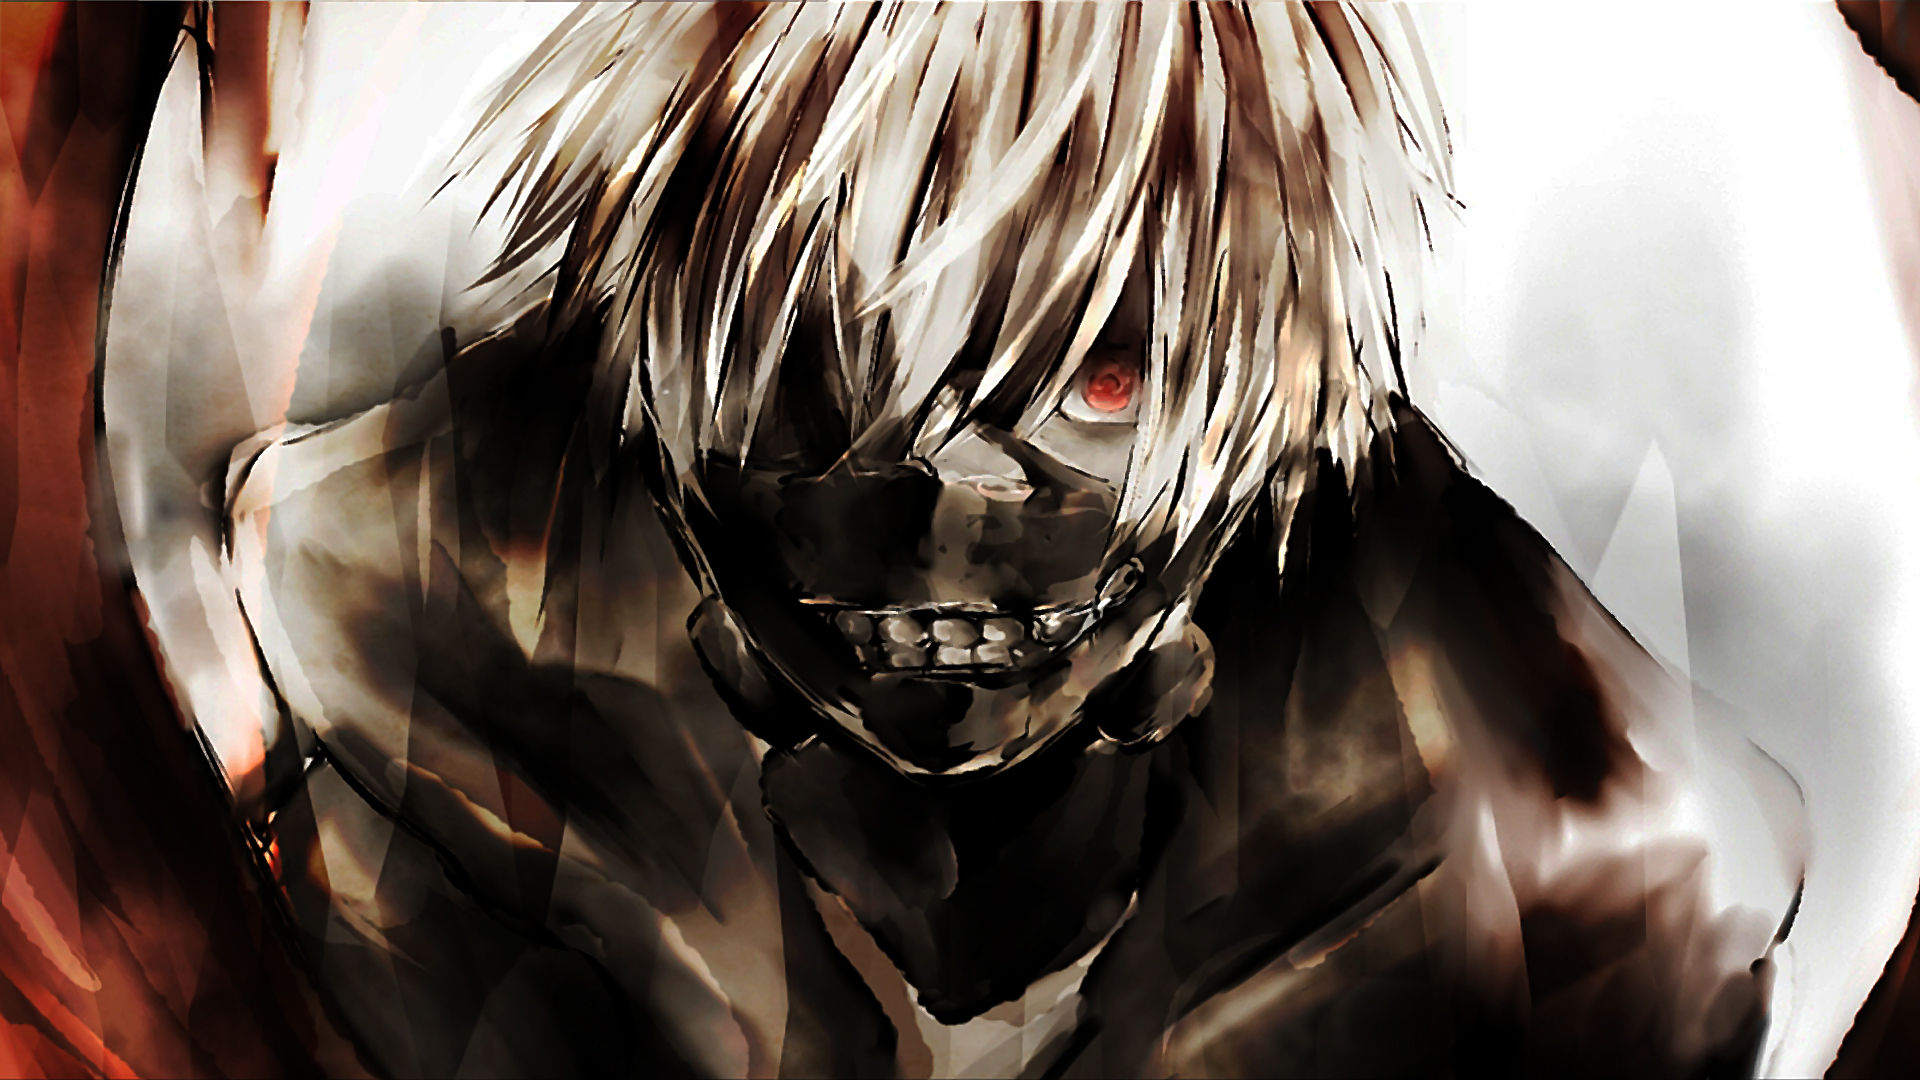 Download Wallpaper From Anime Tokyo Ghoul With Tags Cool